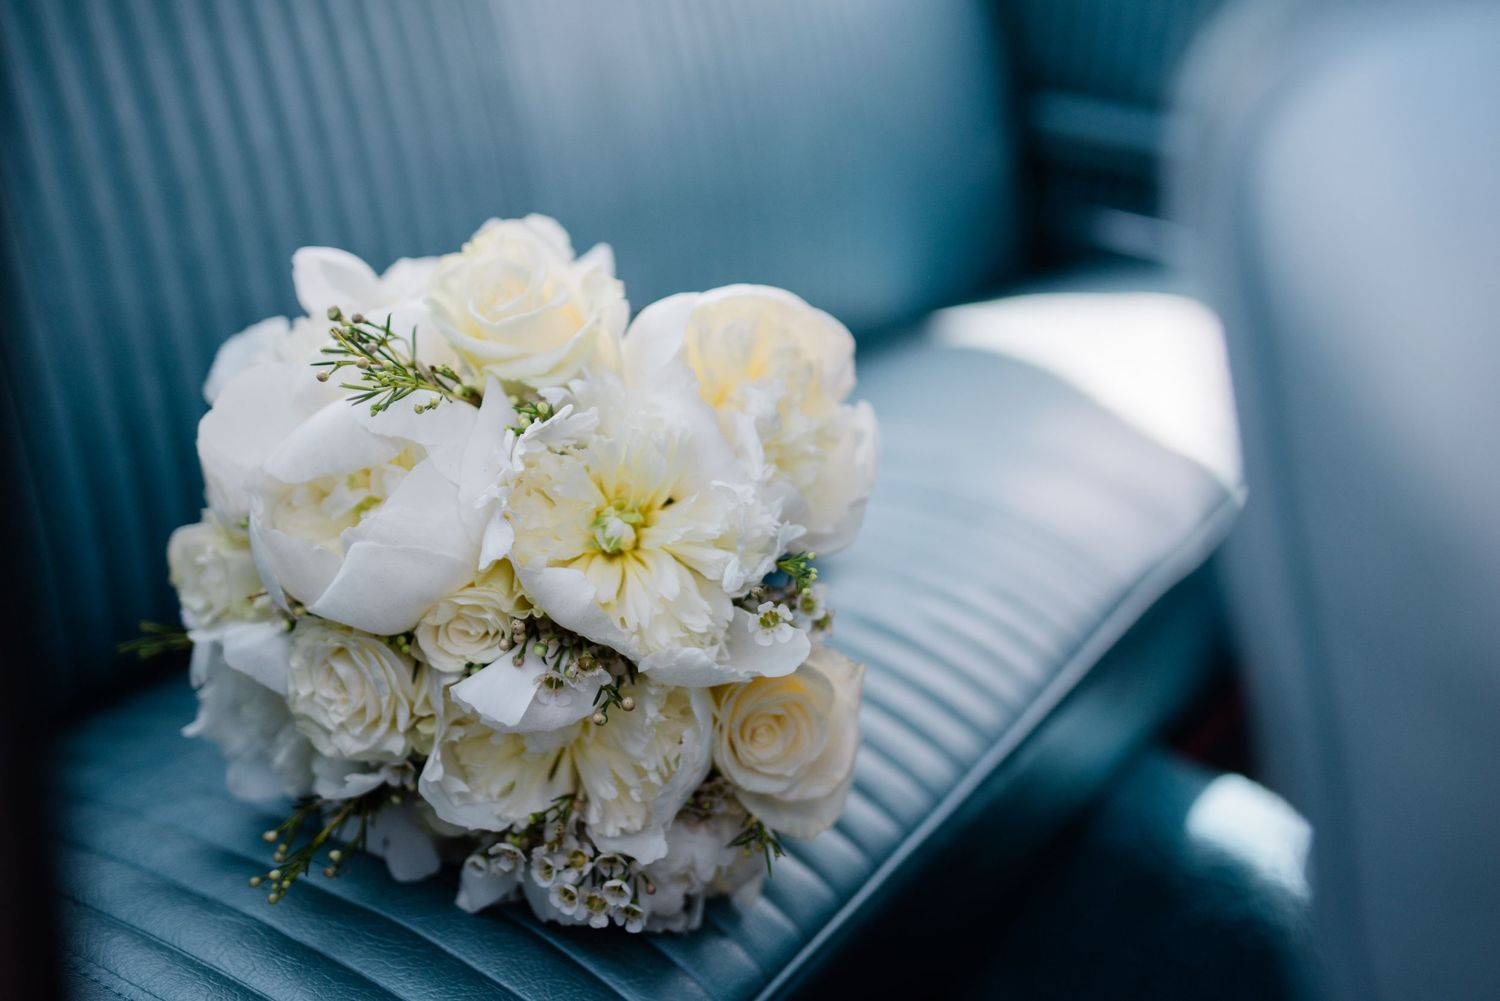 wedding bouquet on back seat of vintage car